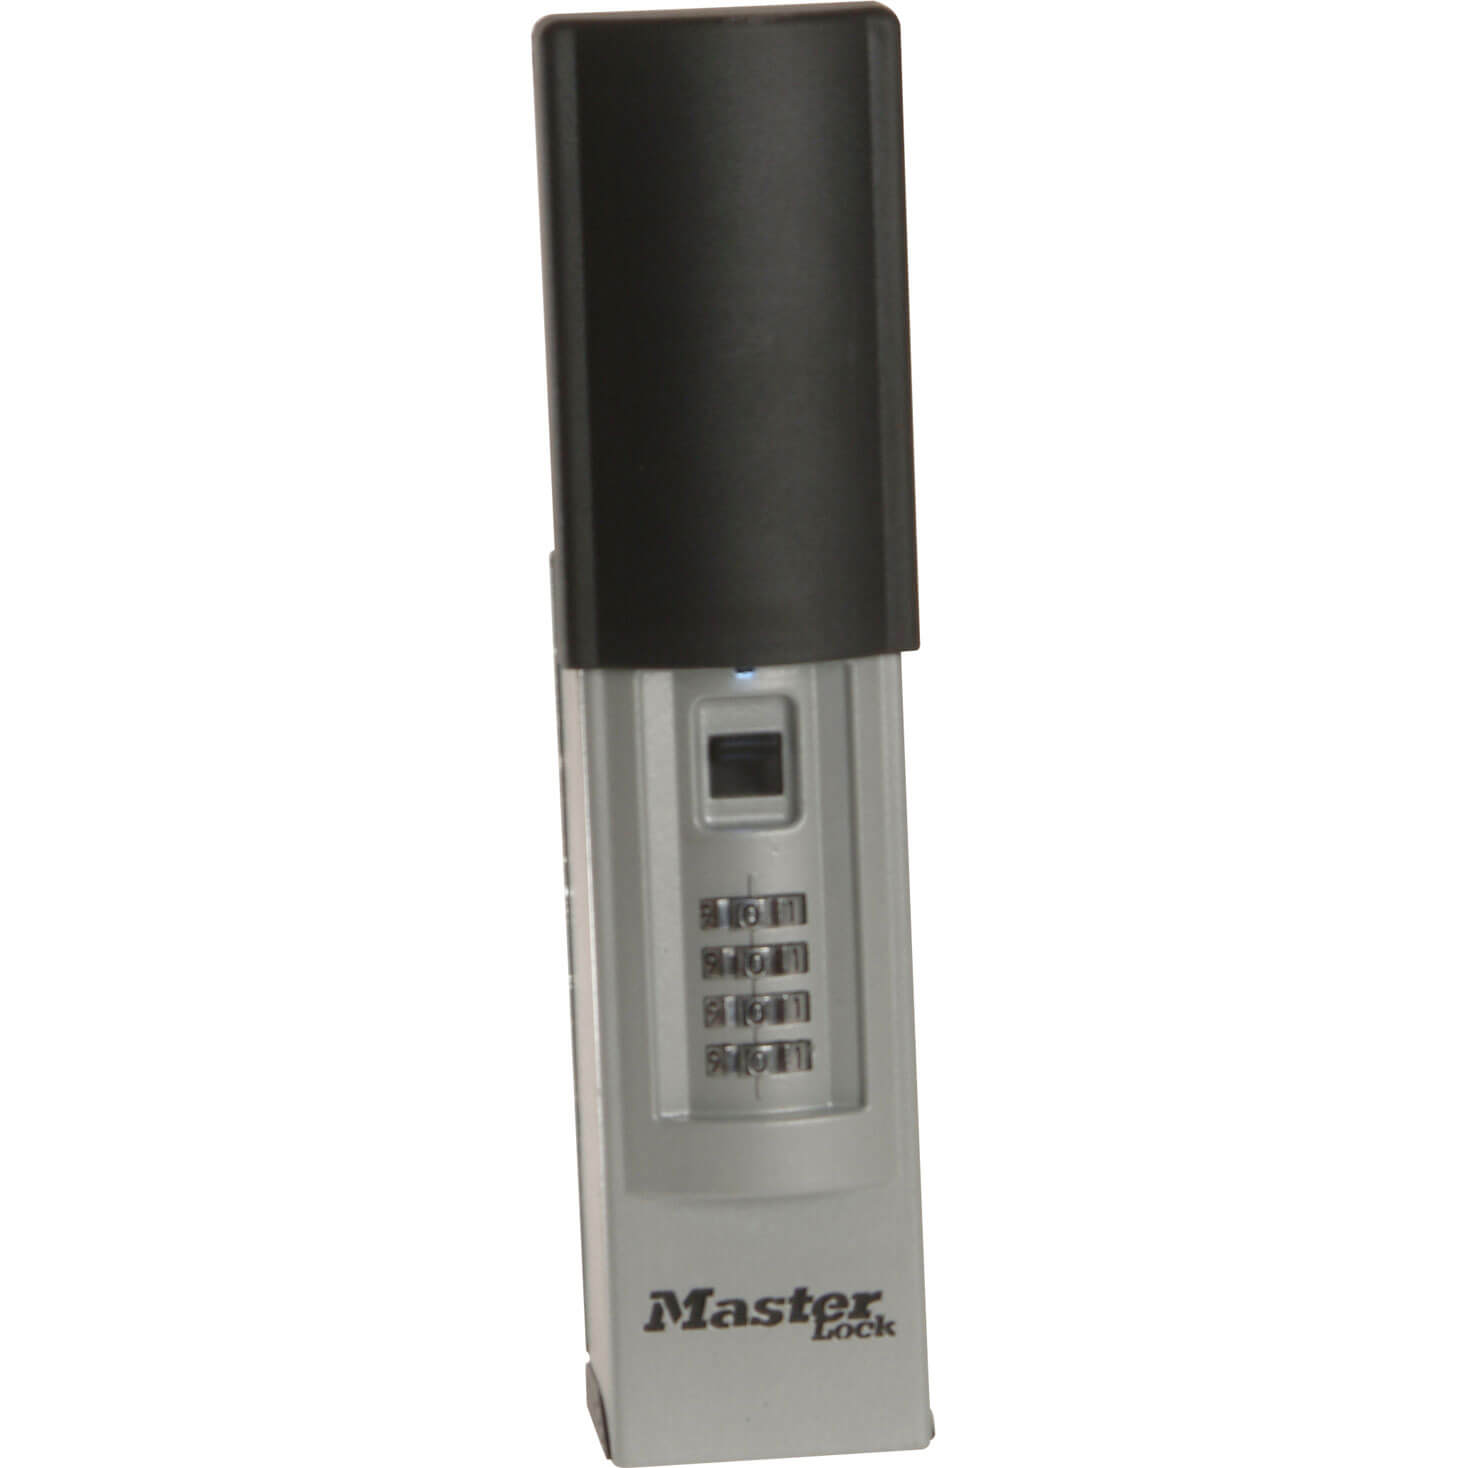 Masterlock Wall Mount Single Key Safe LED Lighted